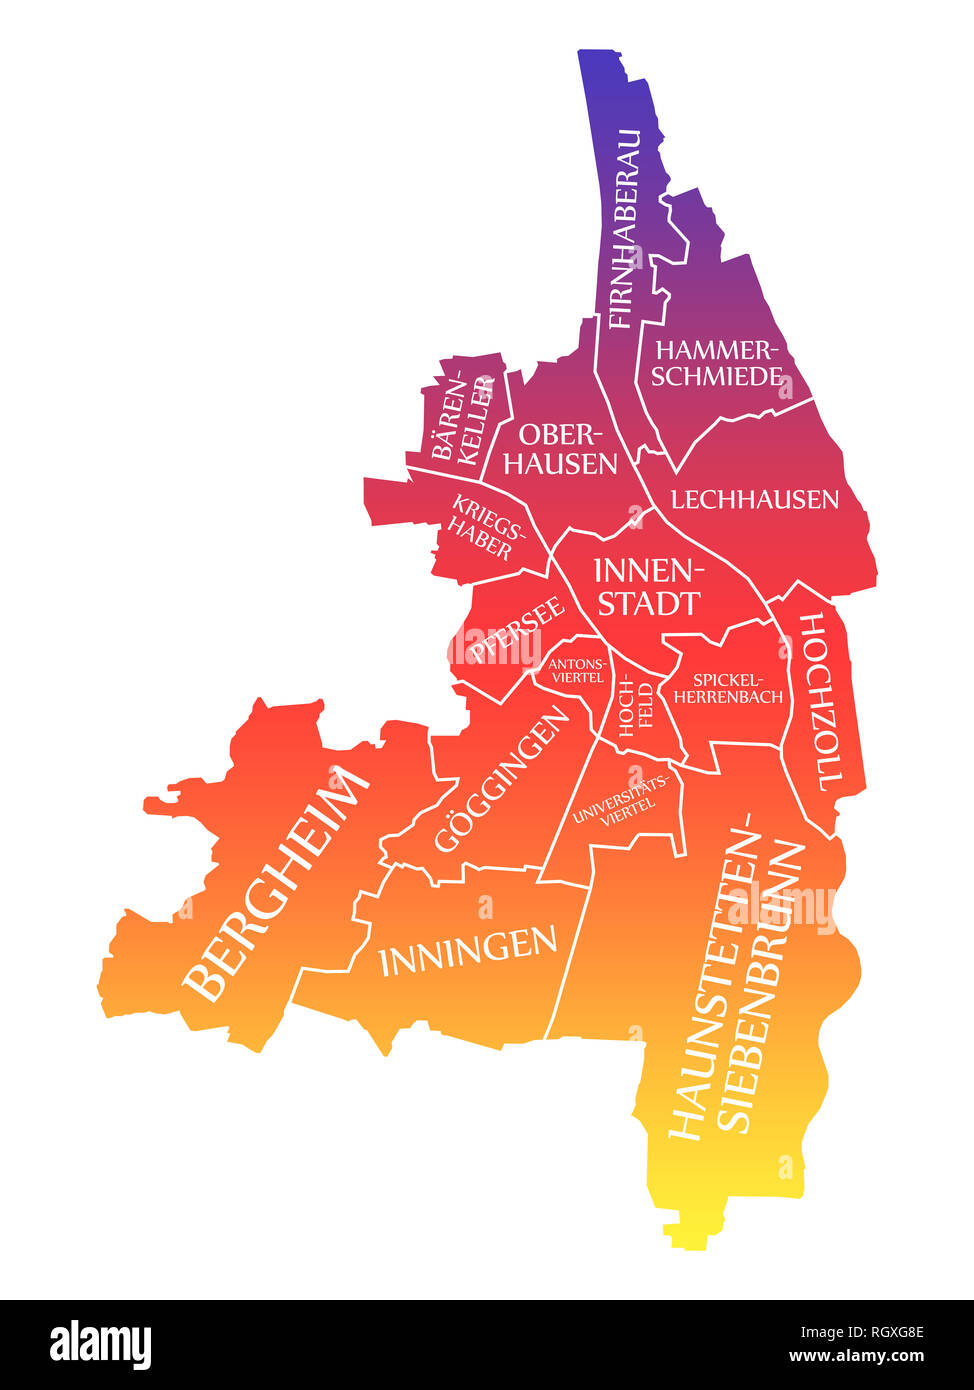 Augsburg City Map Germany De Labelled Rainbow Colored Illustration